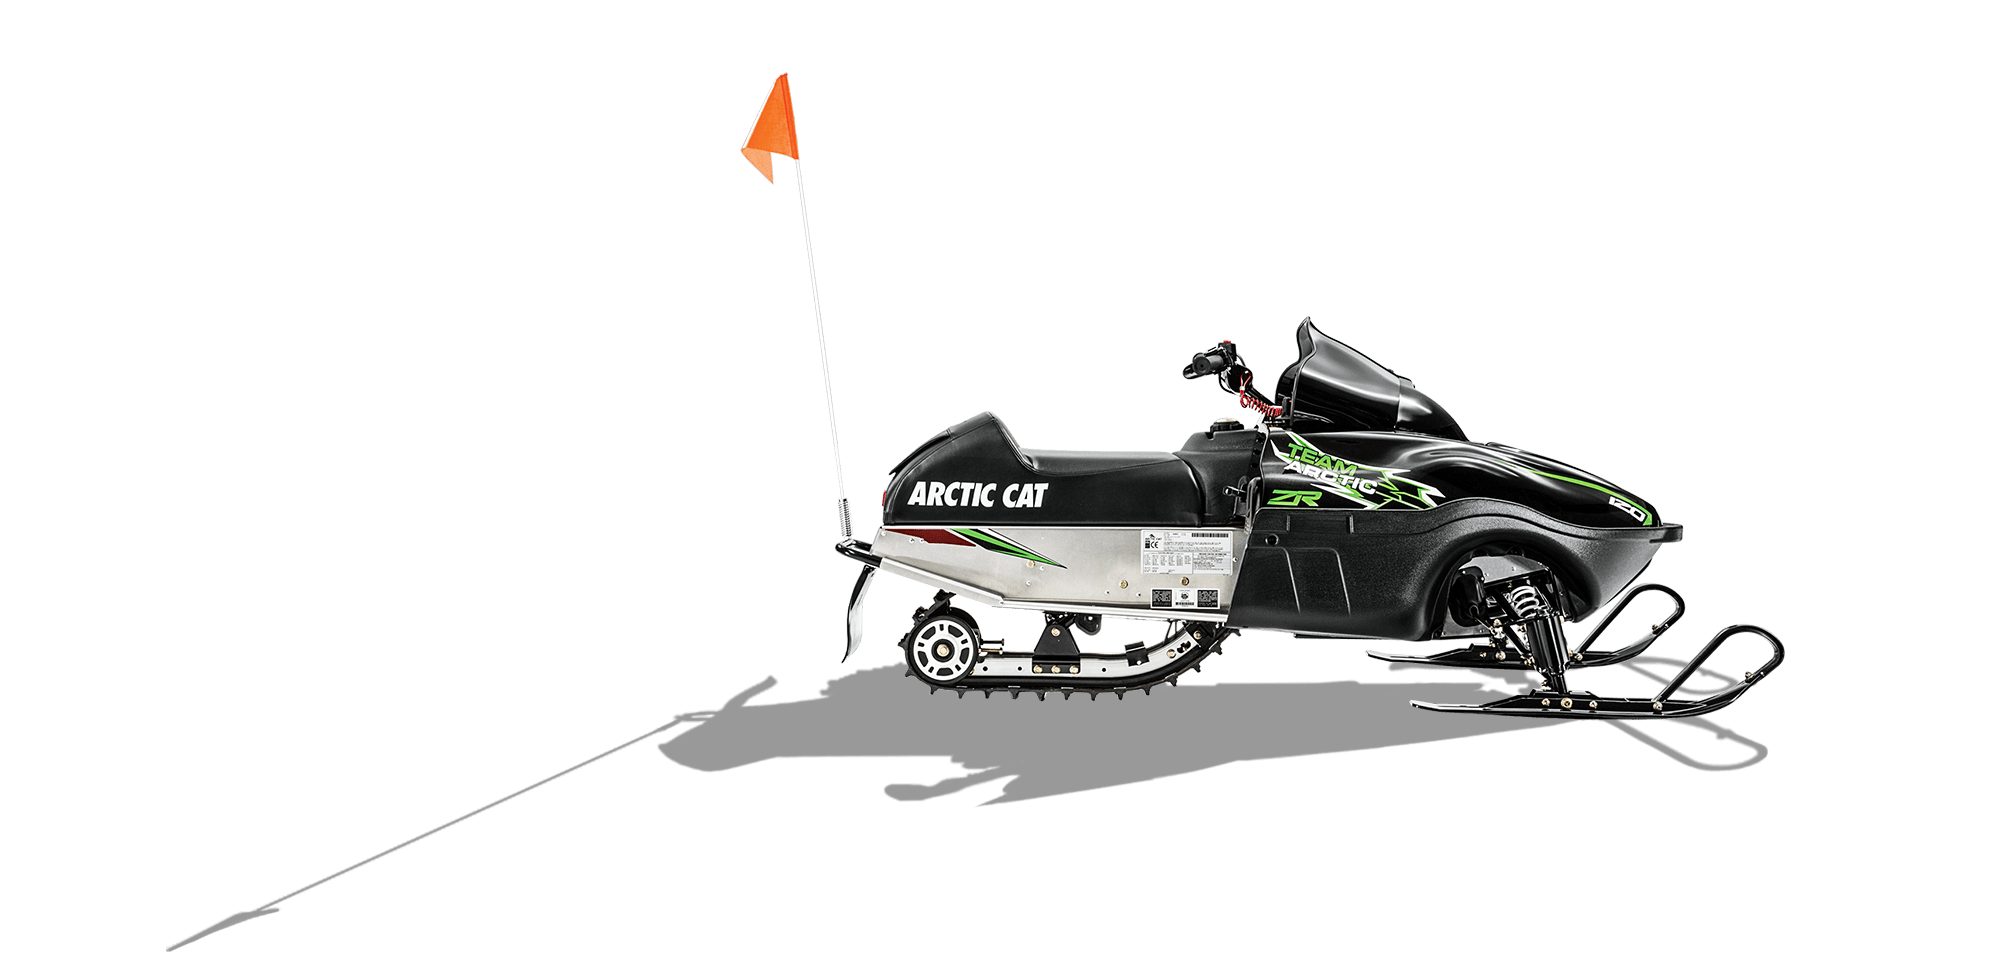 Artic cat snowmobile clipart black and white svg free Models Archive | Arctic Cat svg free